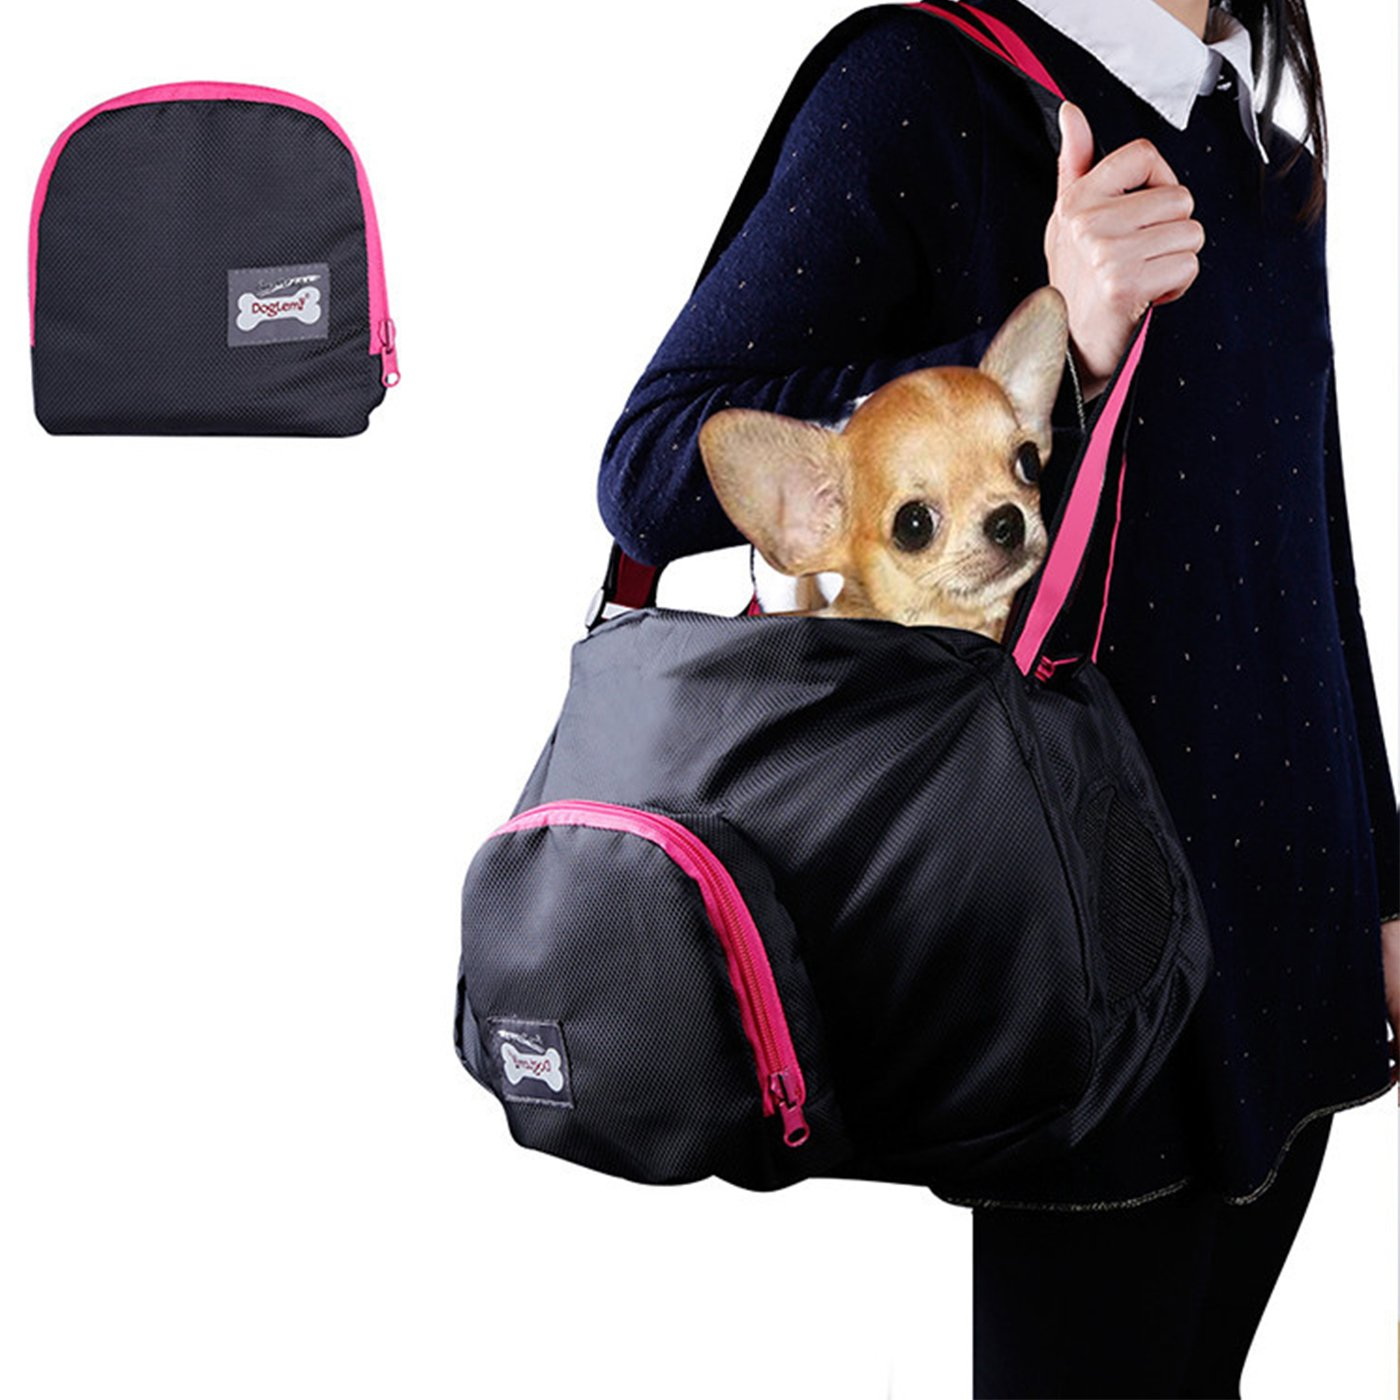 Alfie Pet by Petoga Couture - Juneau Pet Sling Carrier - Color: Black